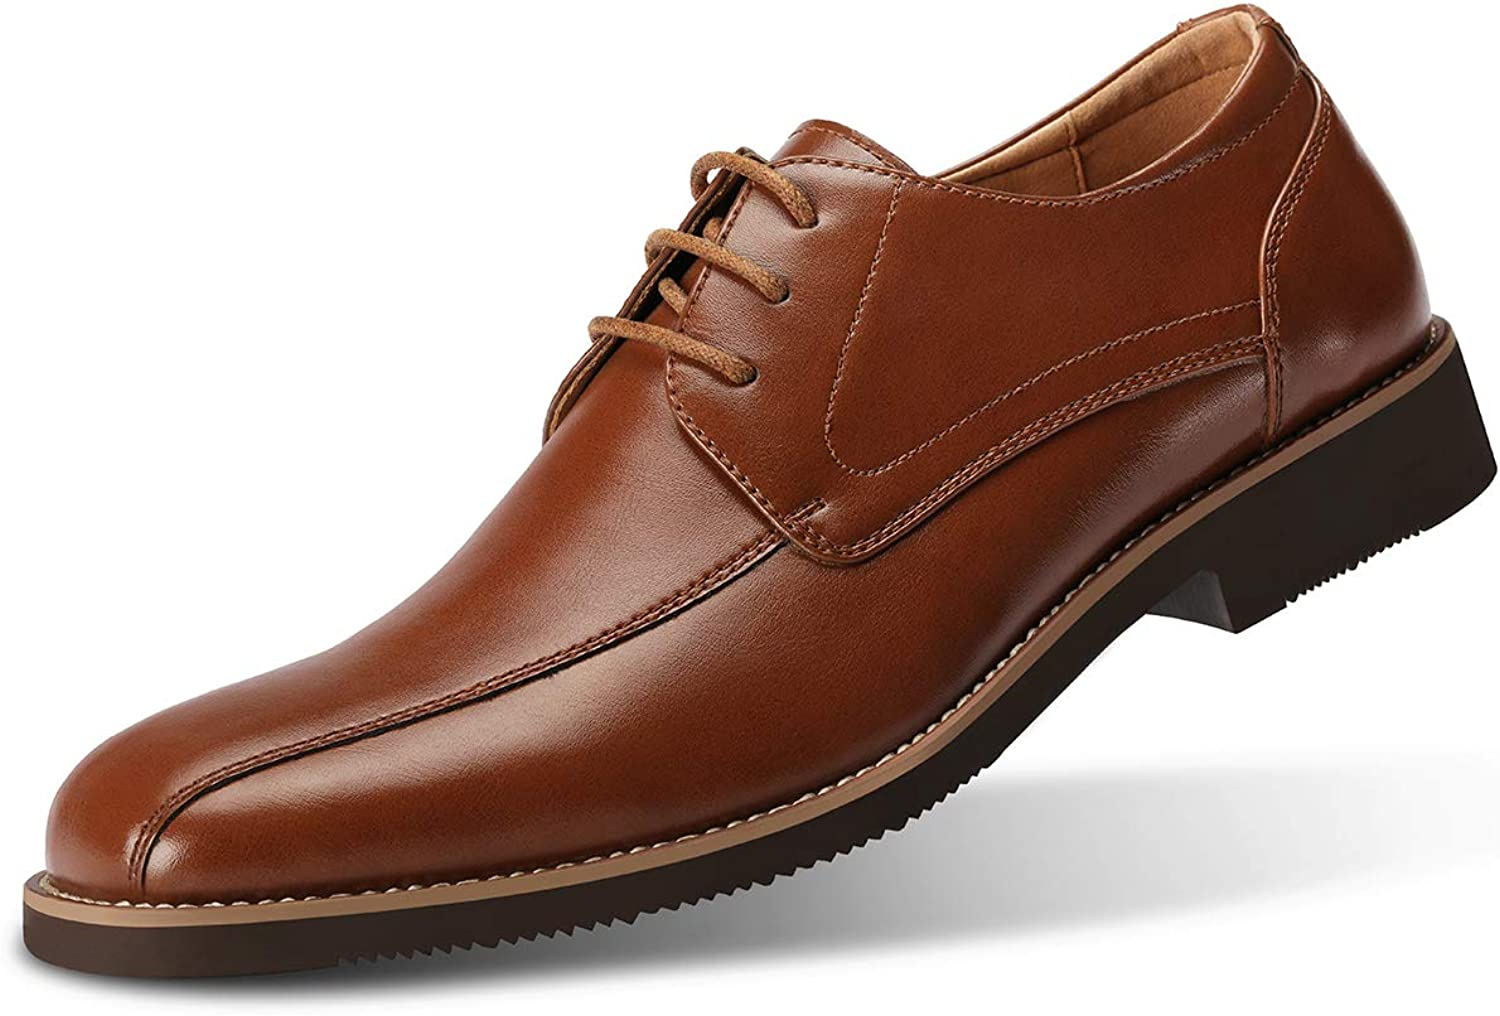 GM GOLAIMAN Men's Leather Dress shoes Square Toe Lace up Oxfords